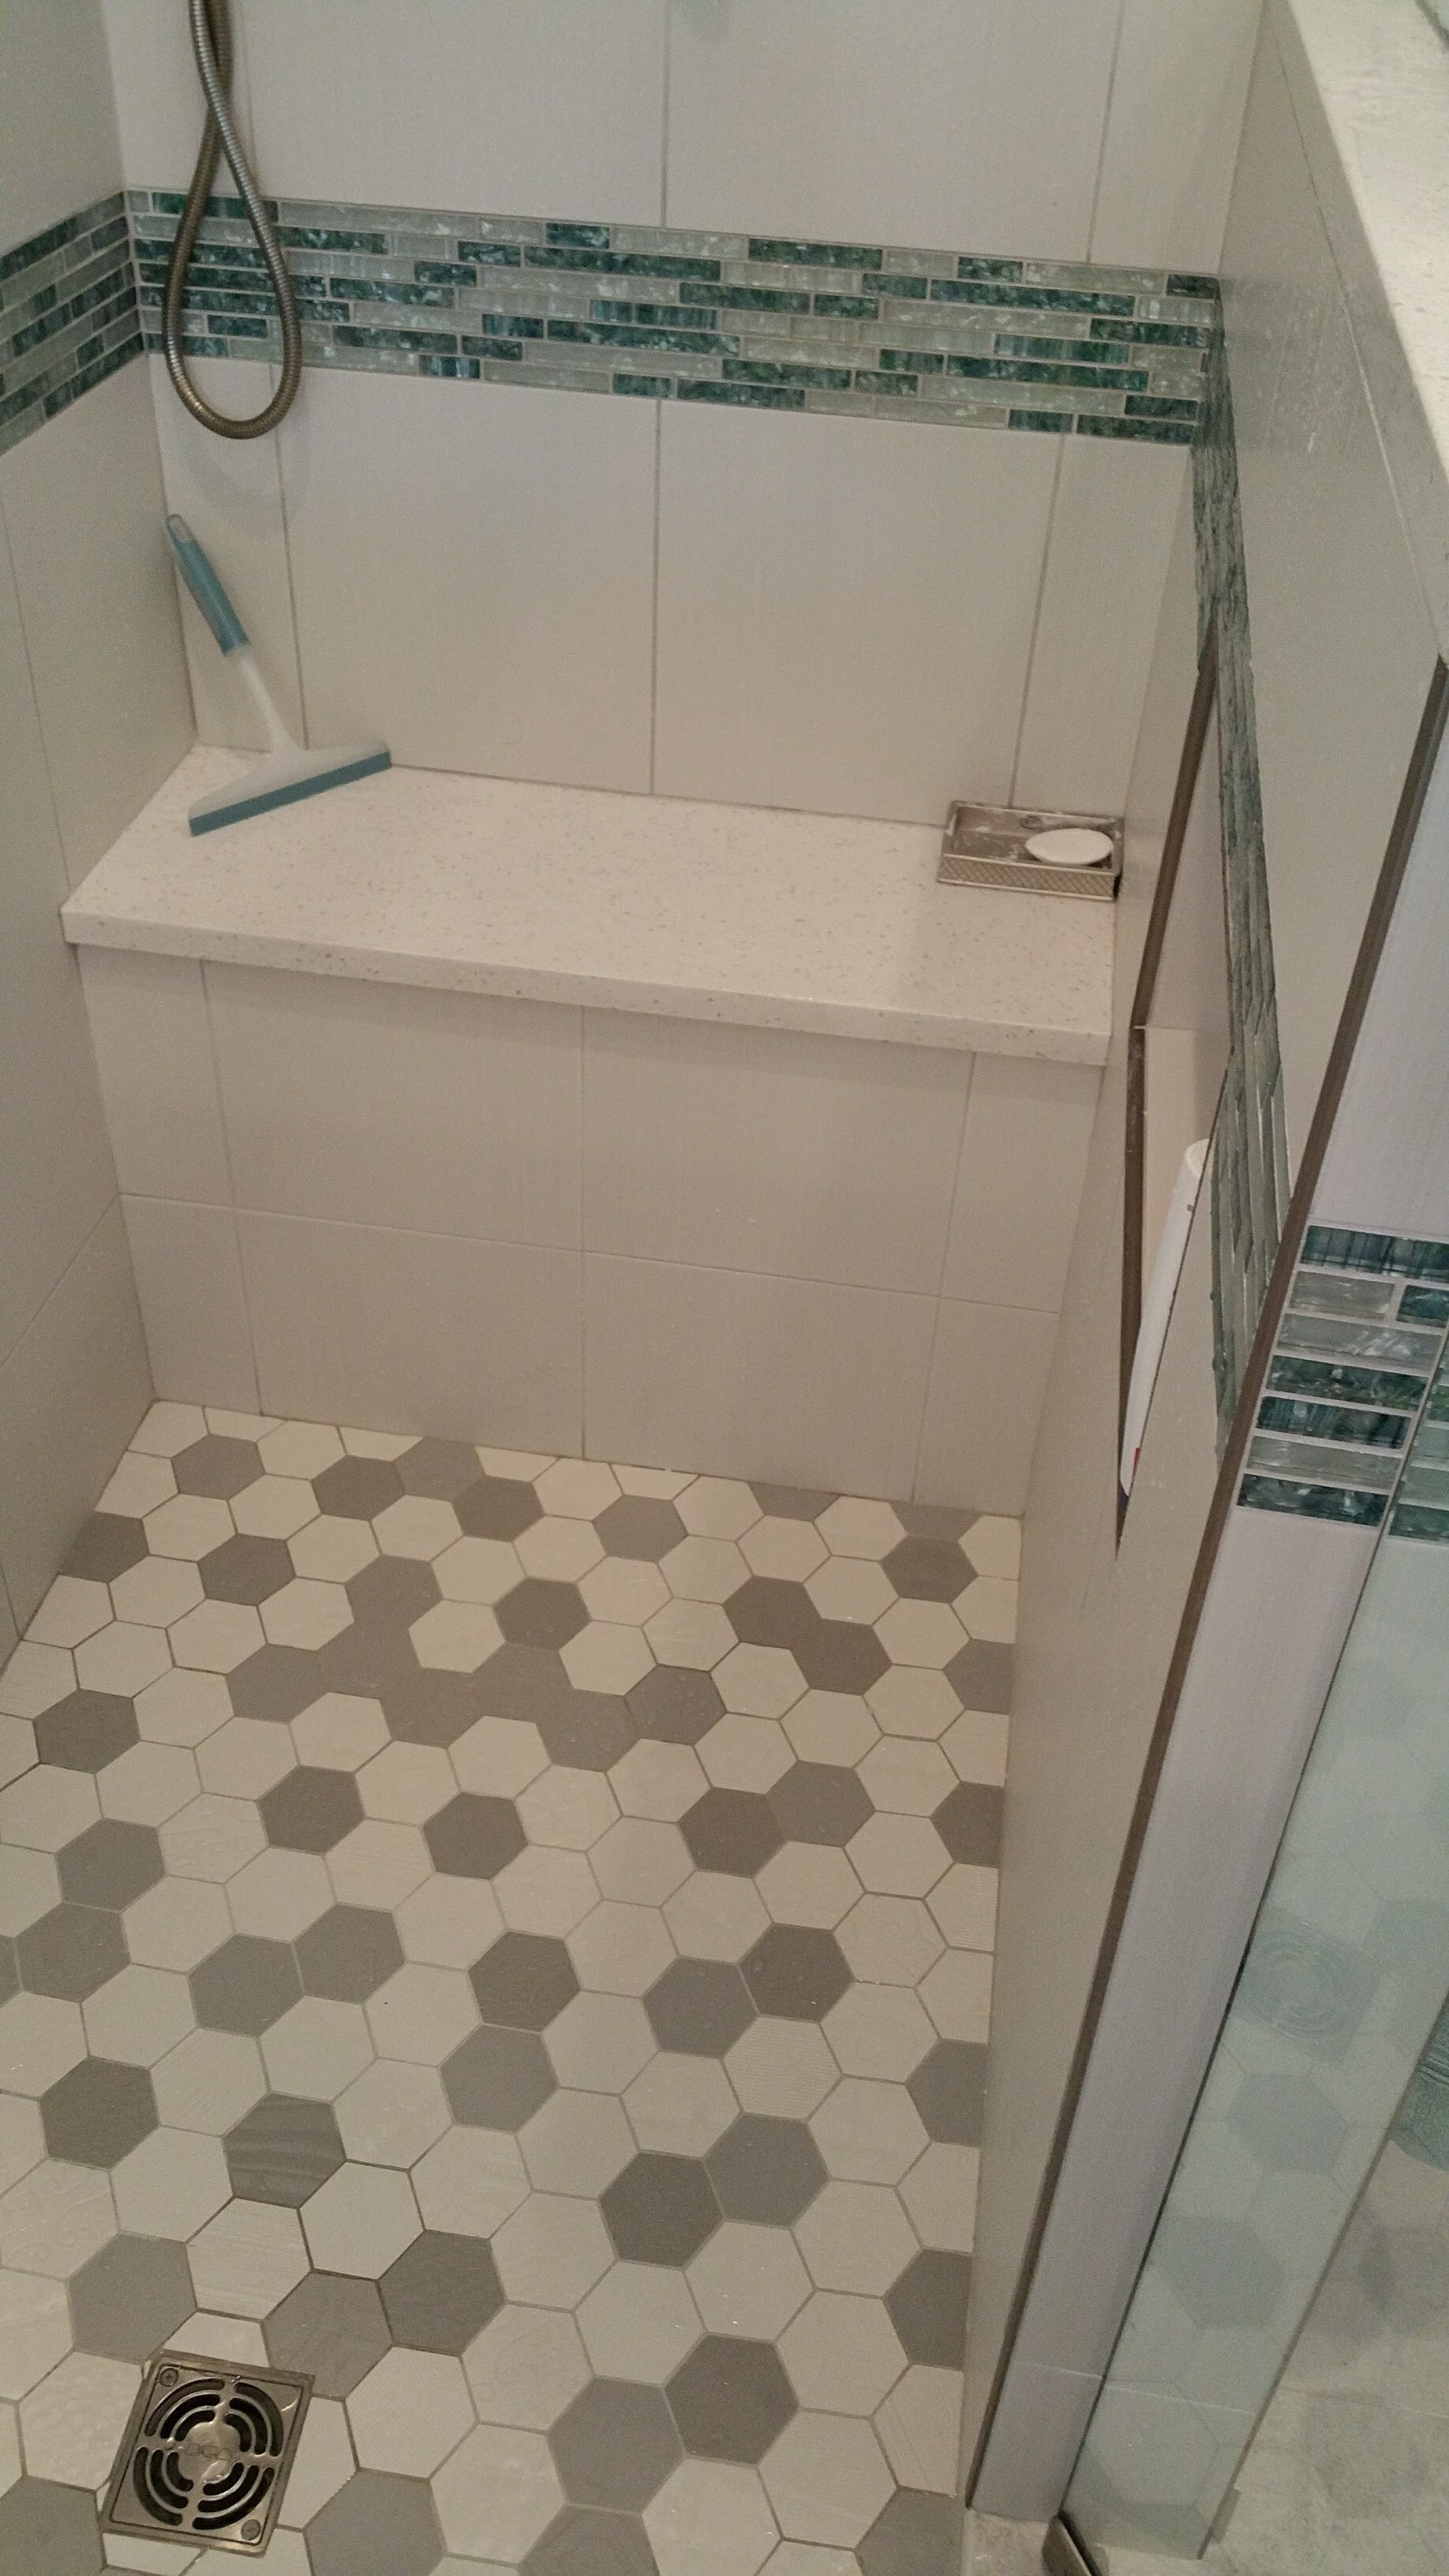 Aqua tile with decorative listello and shower bench - Relo Interior Services